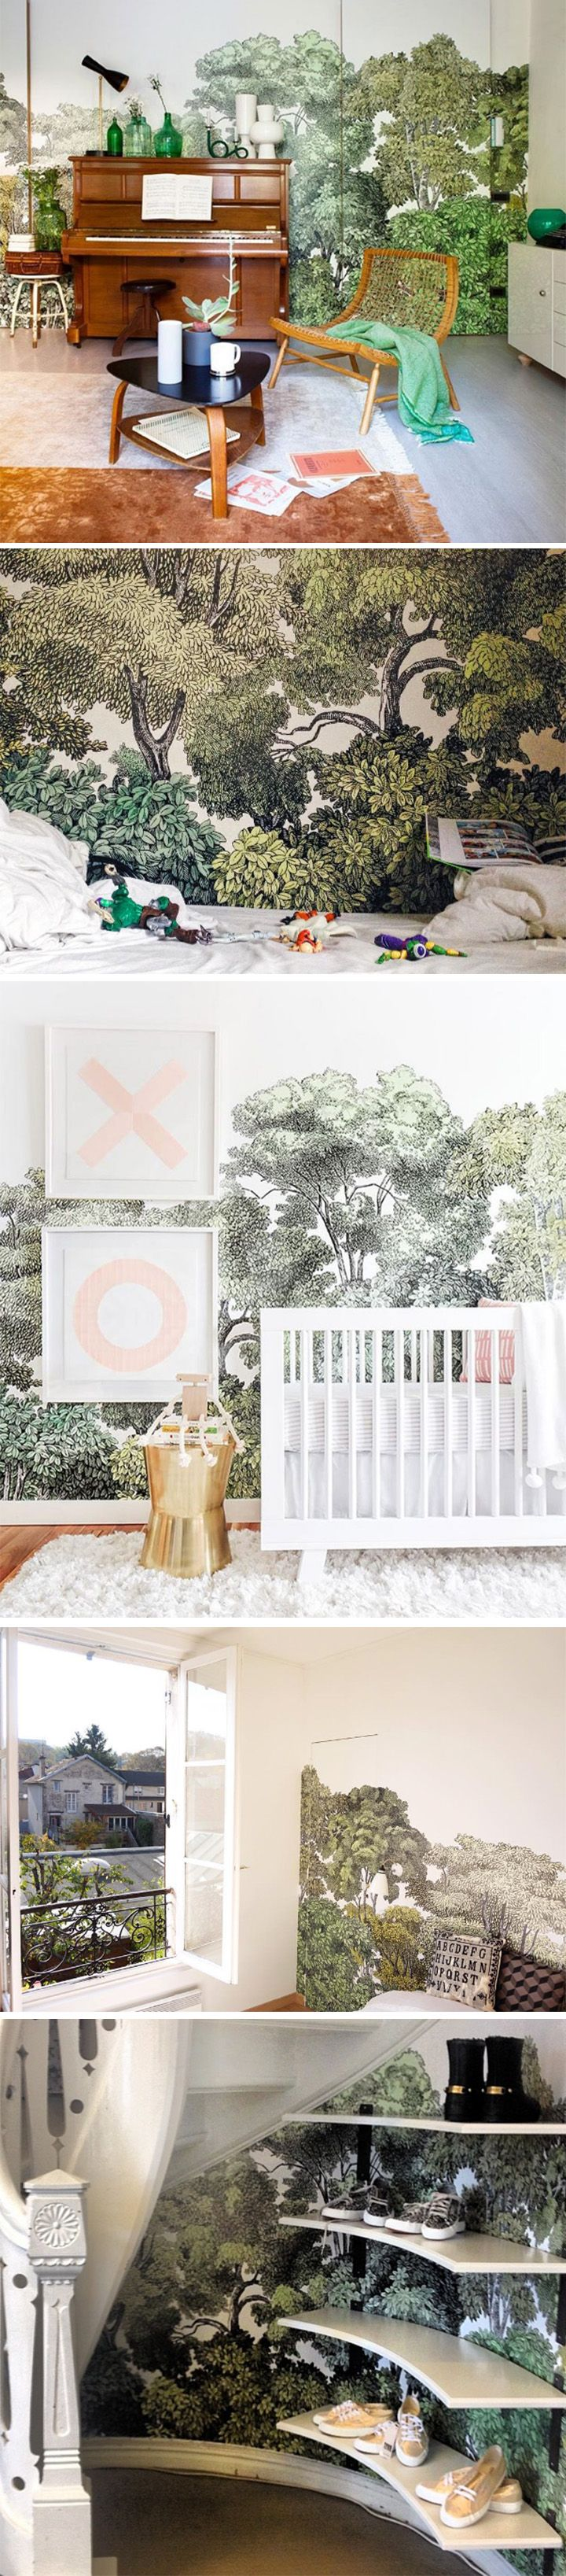 best 25 forest mural ideas only on pinterest forest bedroom get inspired on how to style our popular wall mural design bellewood we have collected